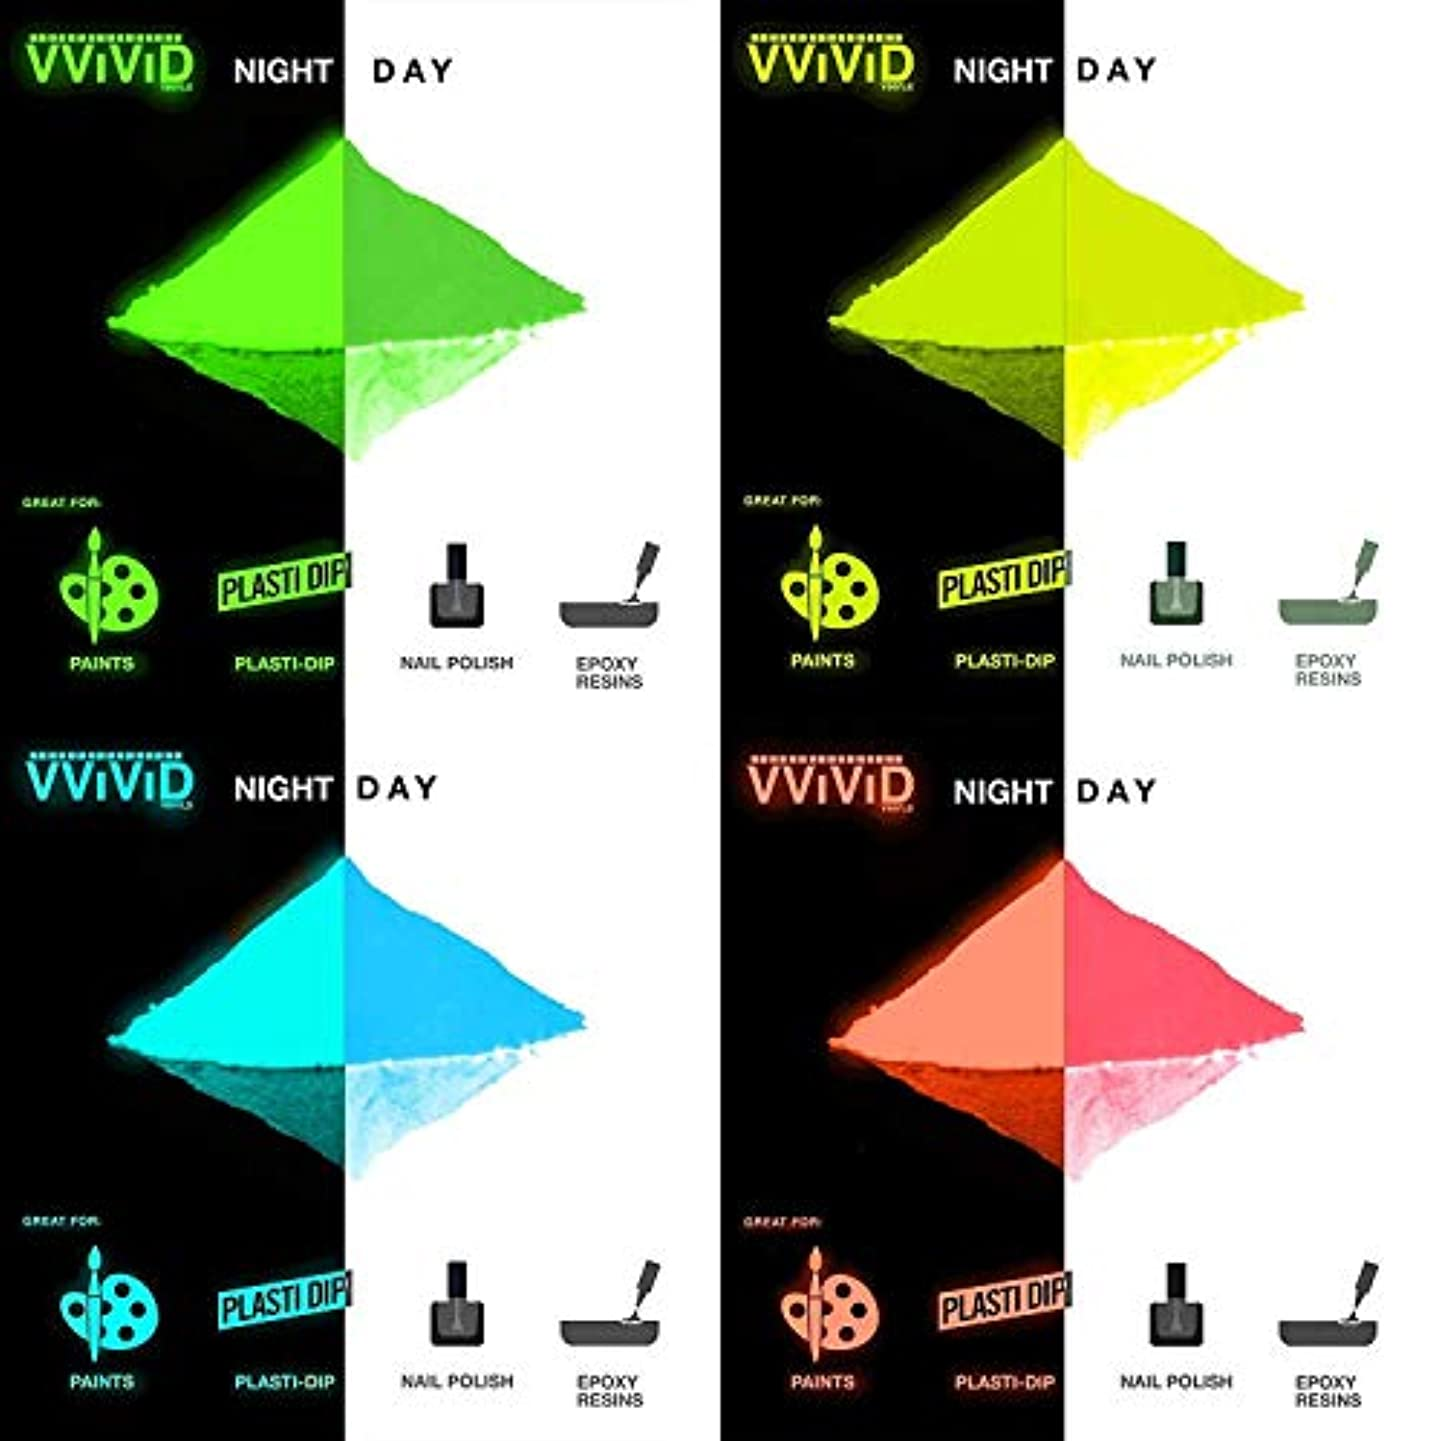 VViViD Prisma65 Glow in The Dark Pigment 30g Packet Multi Color Pack (4 Color Pack)